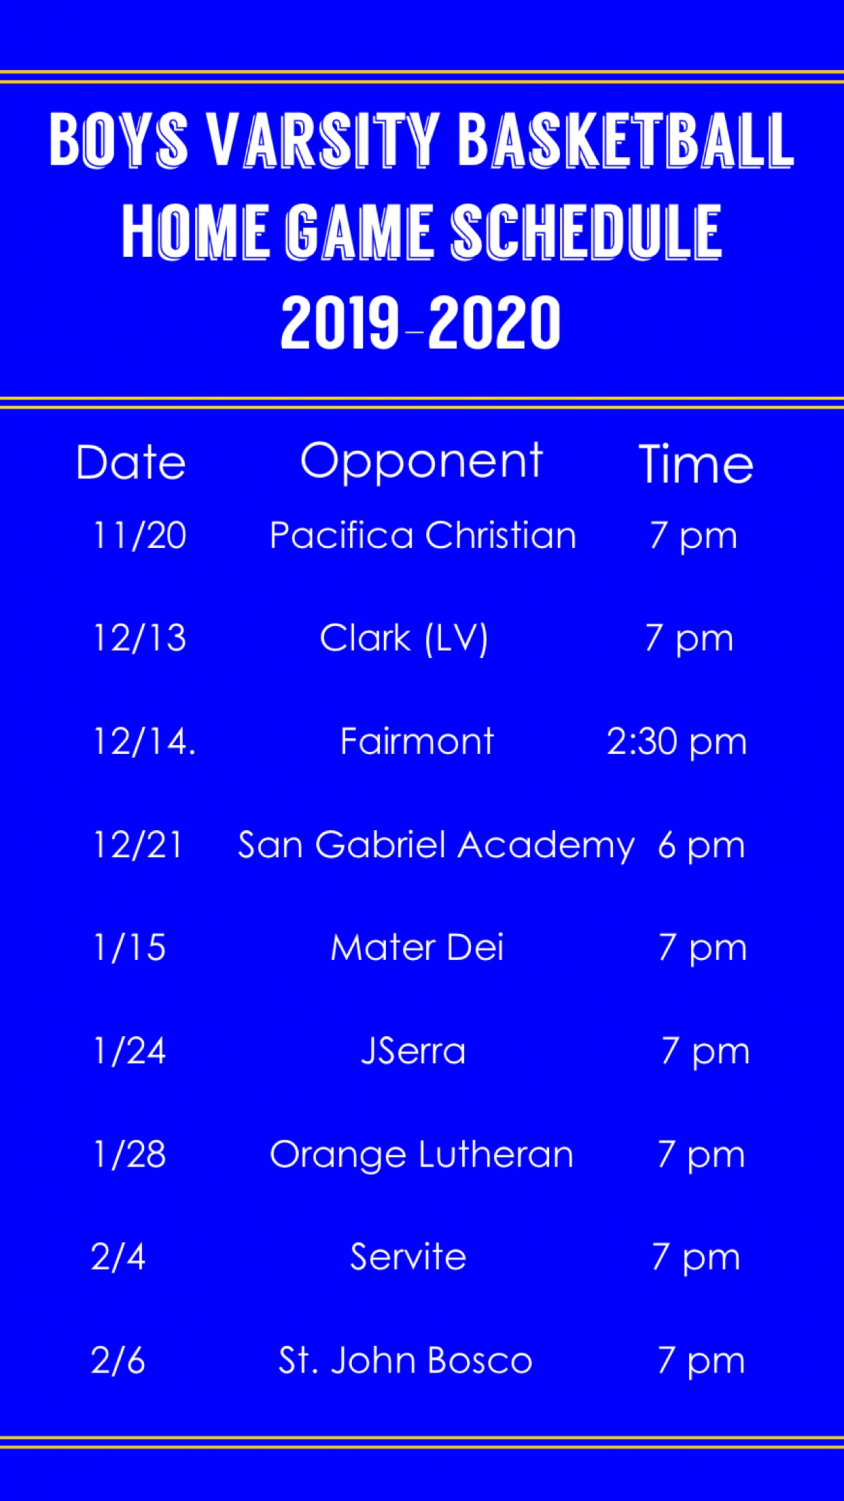 Come support your boys!